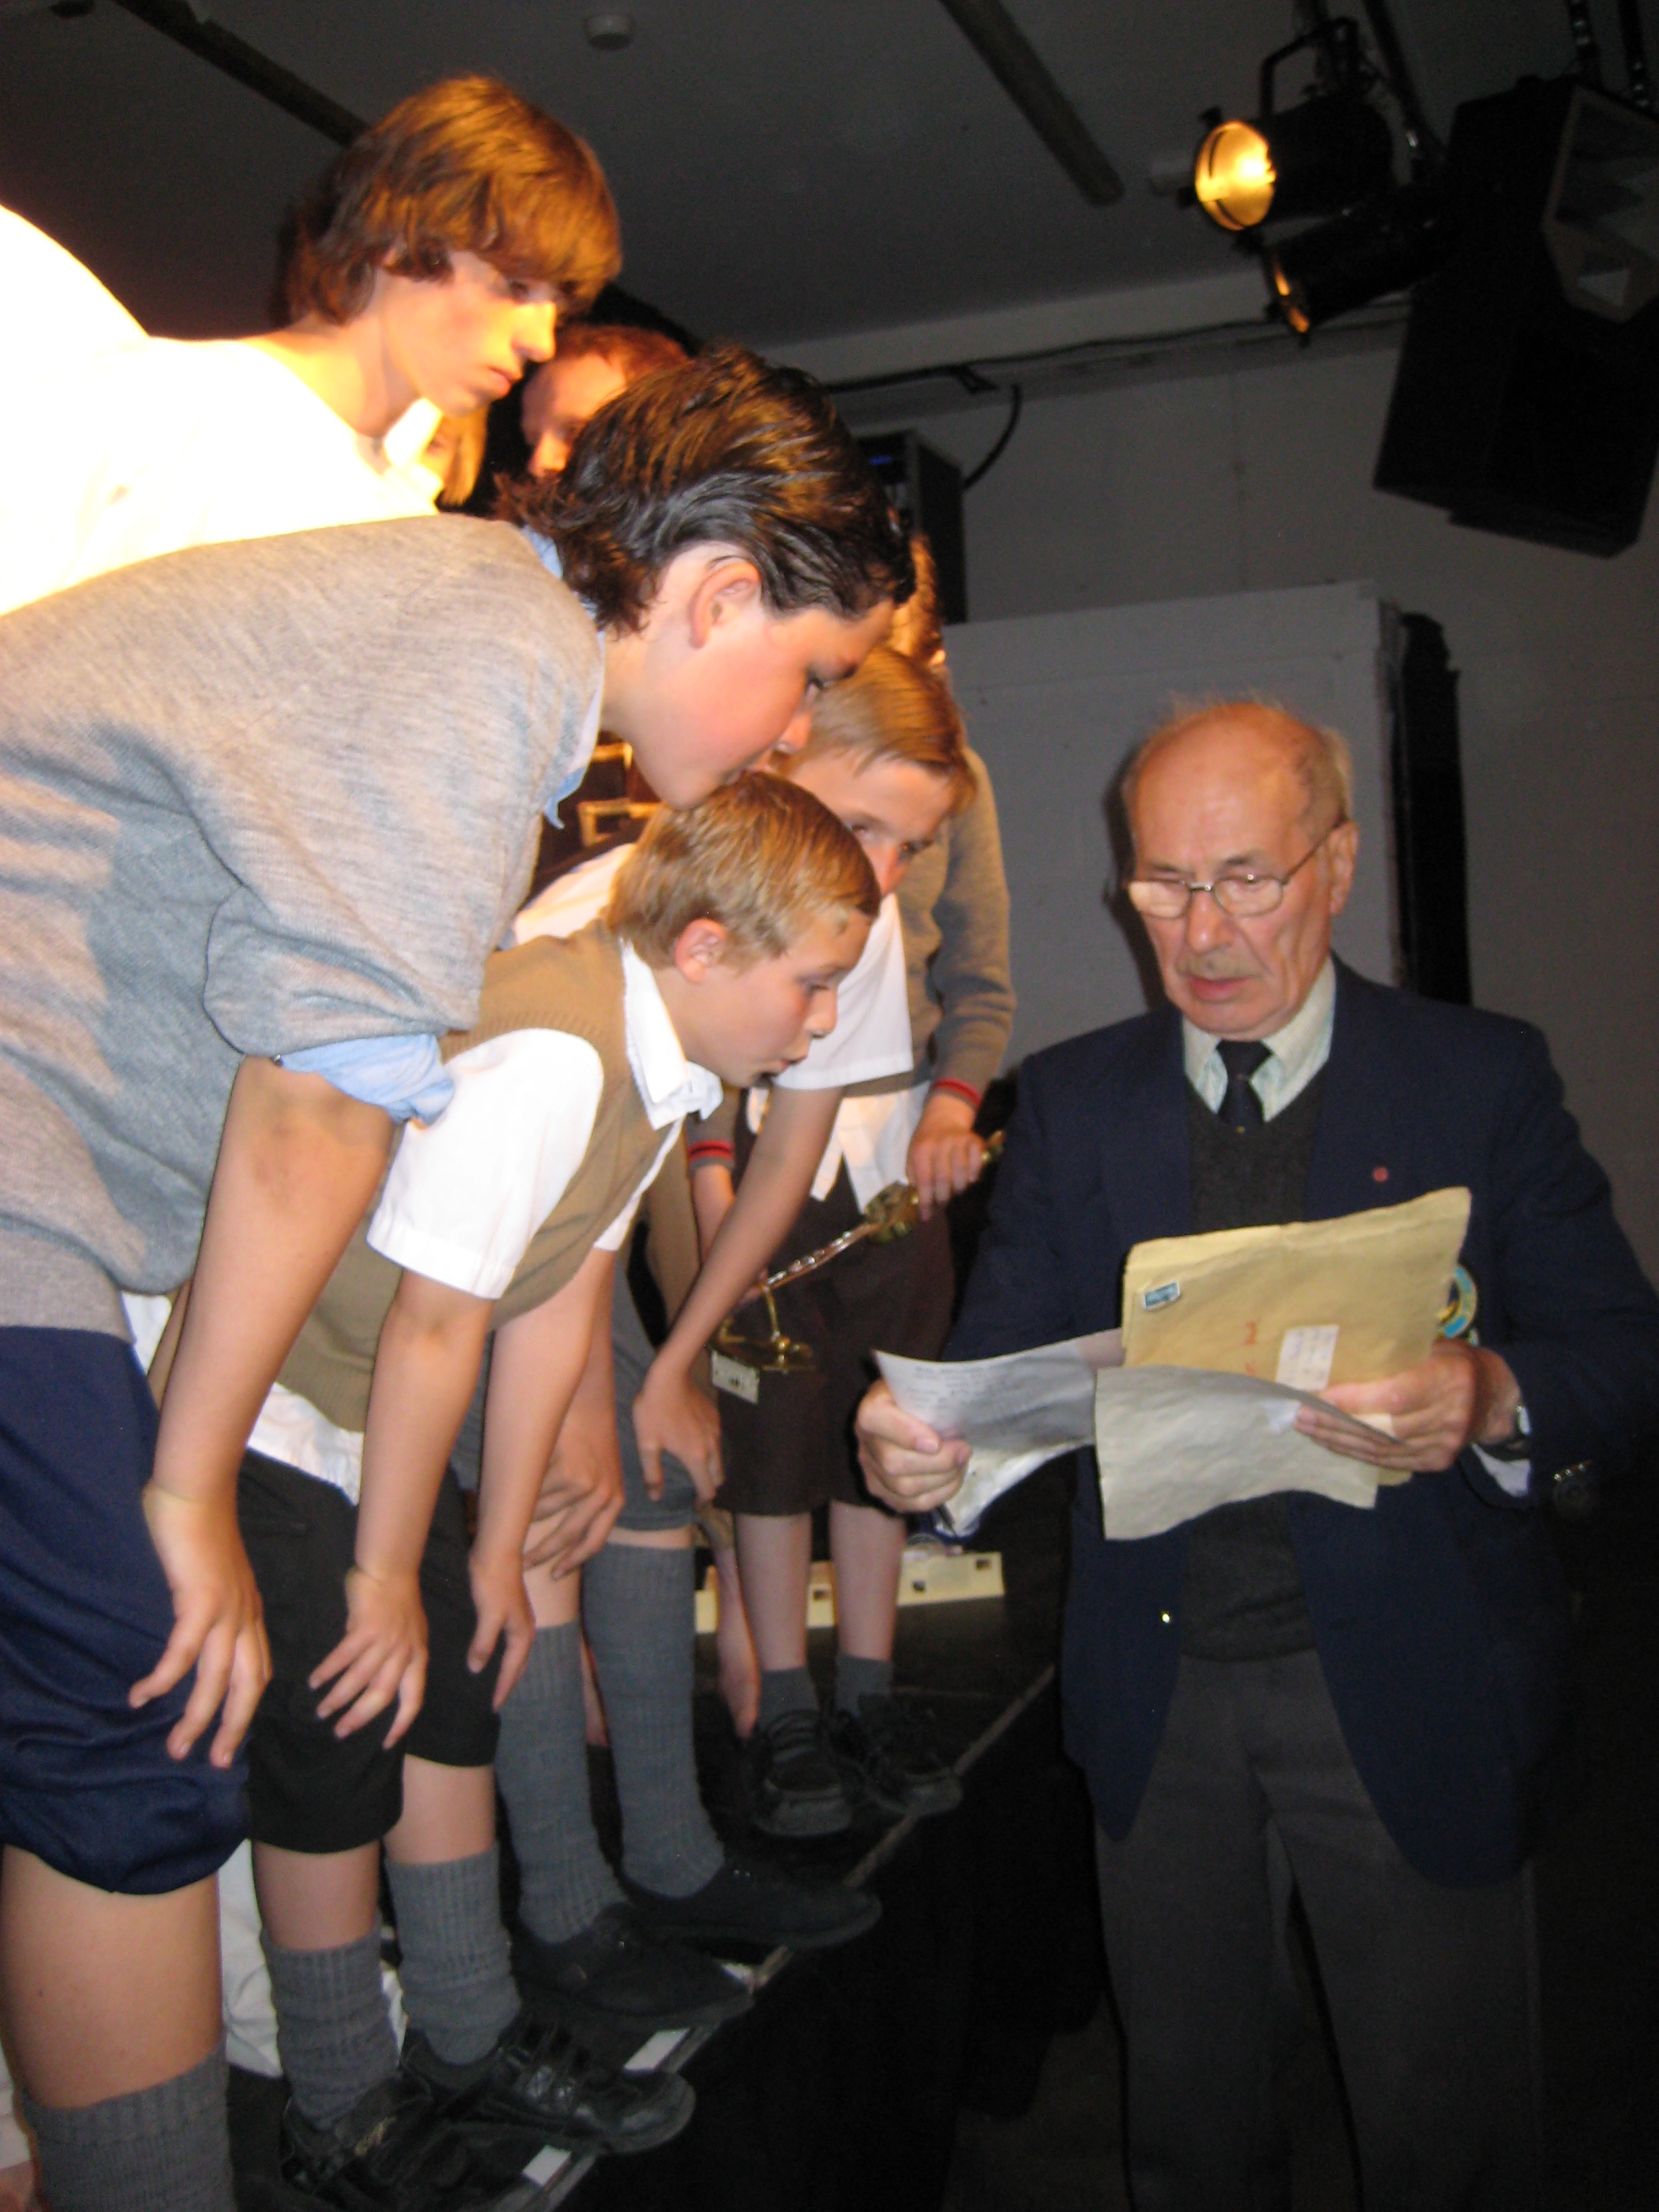 Victor Chandler, with boys in Barrie Wheatley's play of the Magic Door by Dan Billany